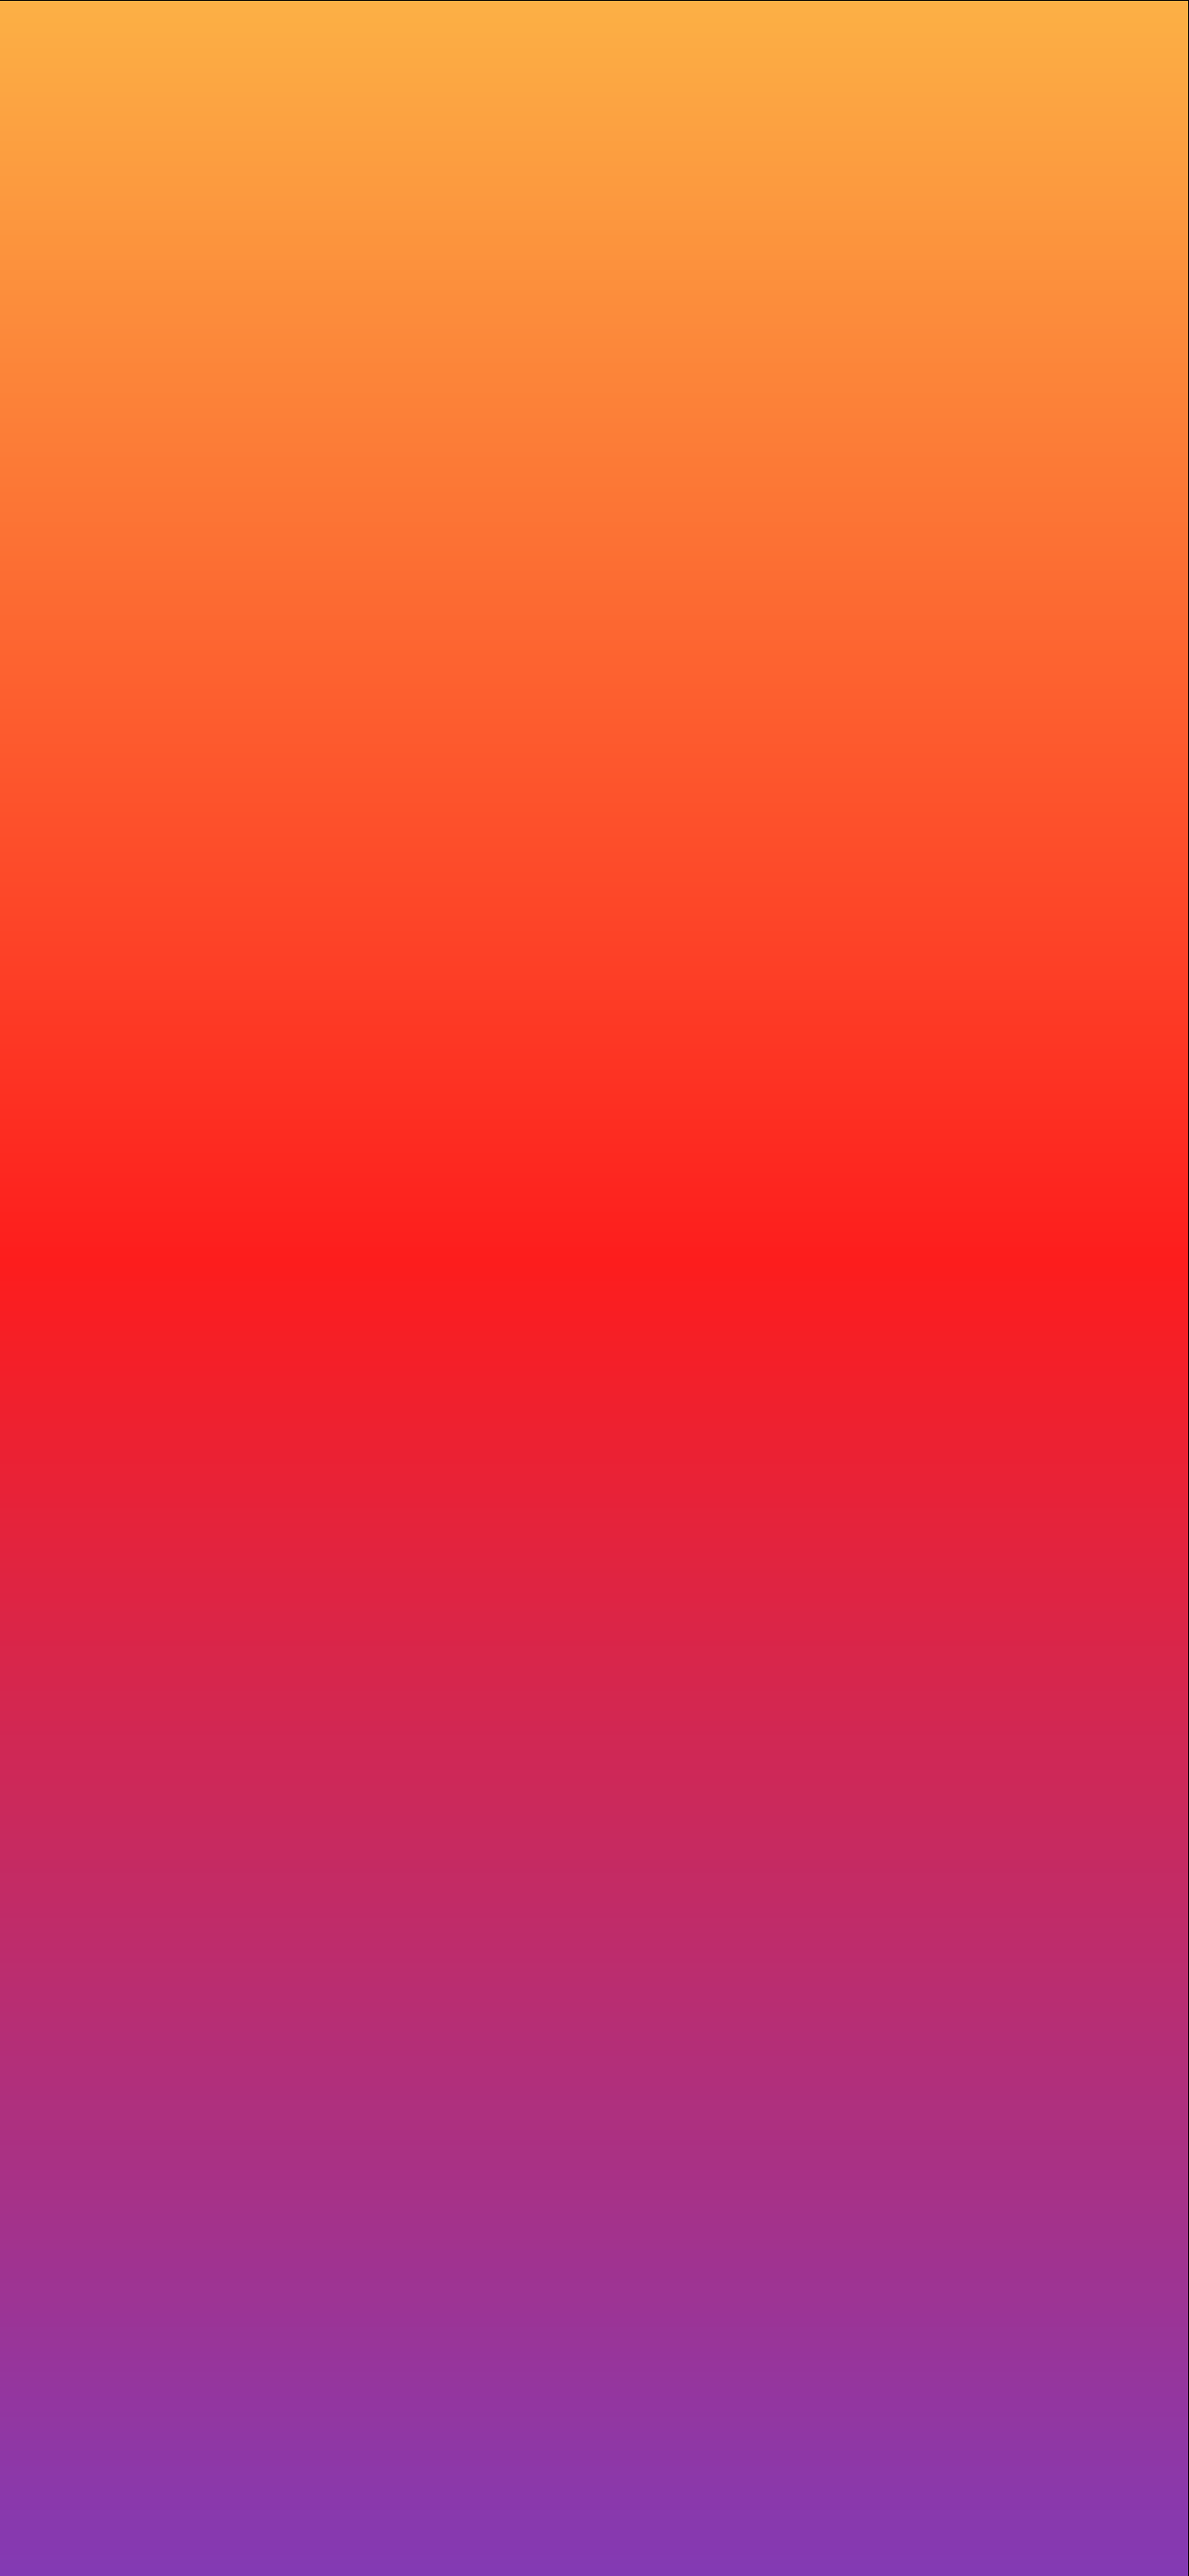 Gradient Wallpaper For Iphone 11 Free Background Images White Stickers Burgundy Wedding Invitations